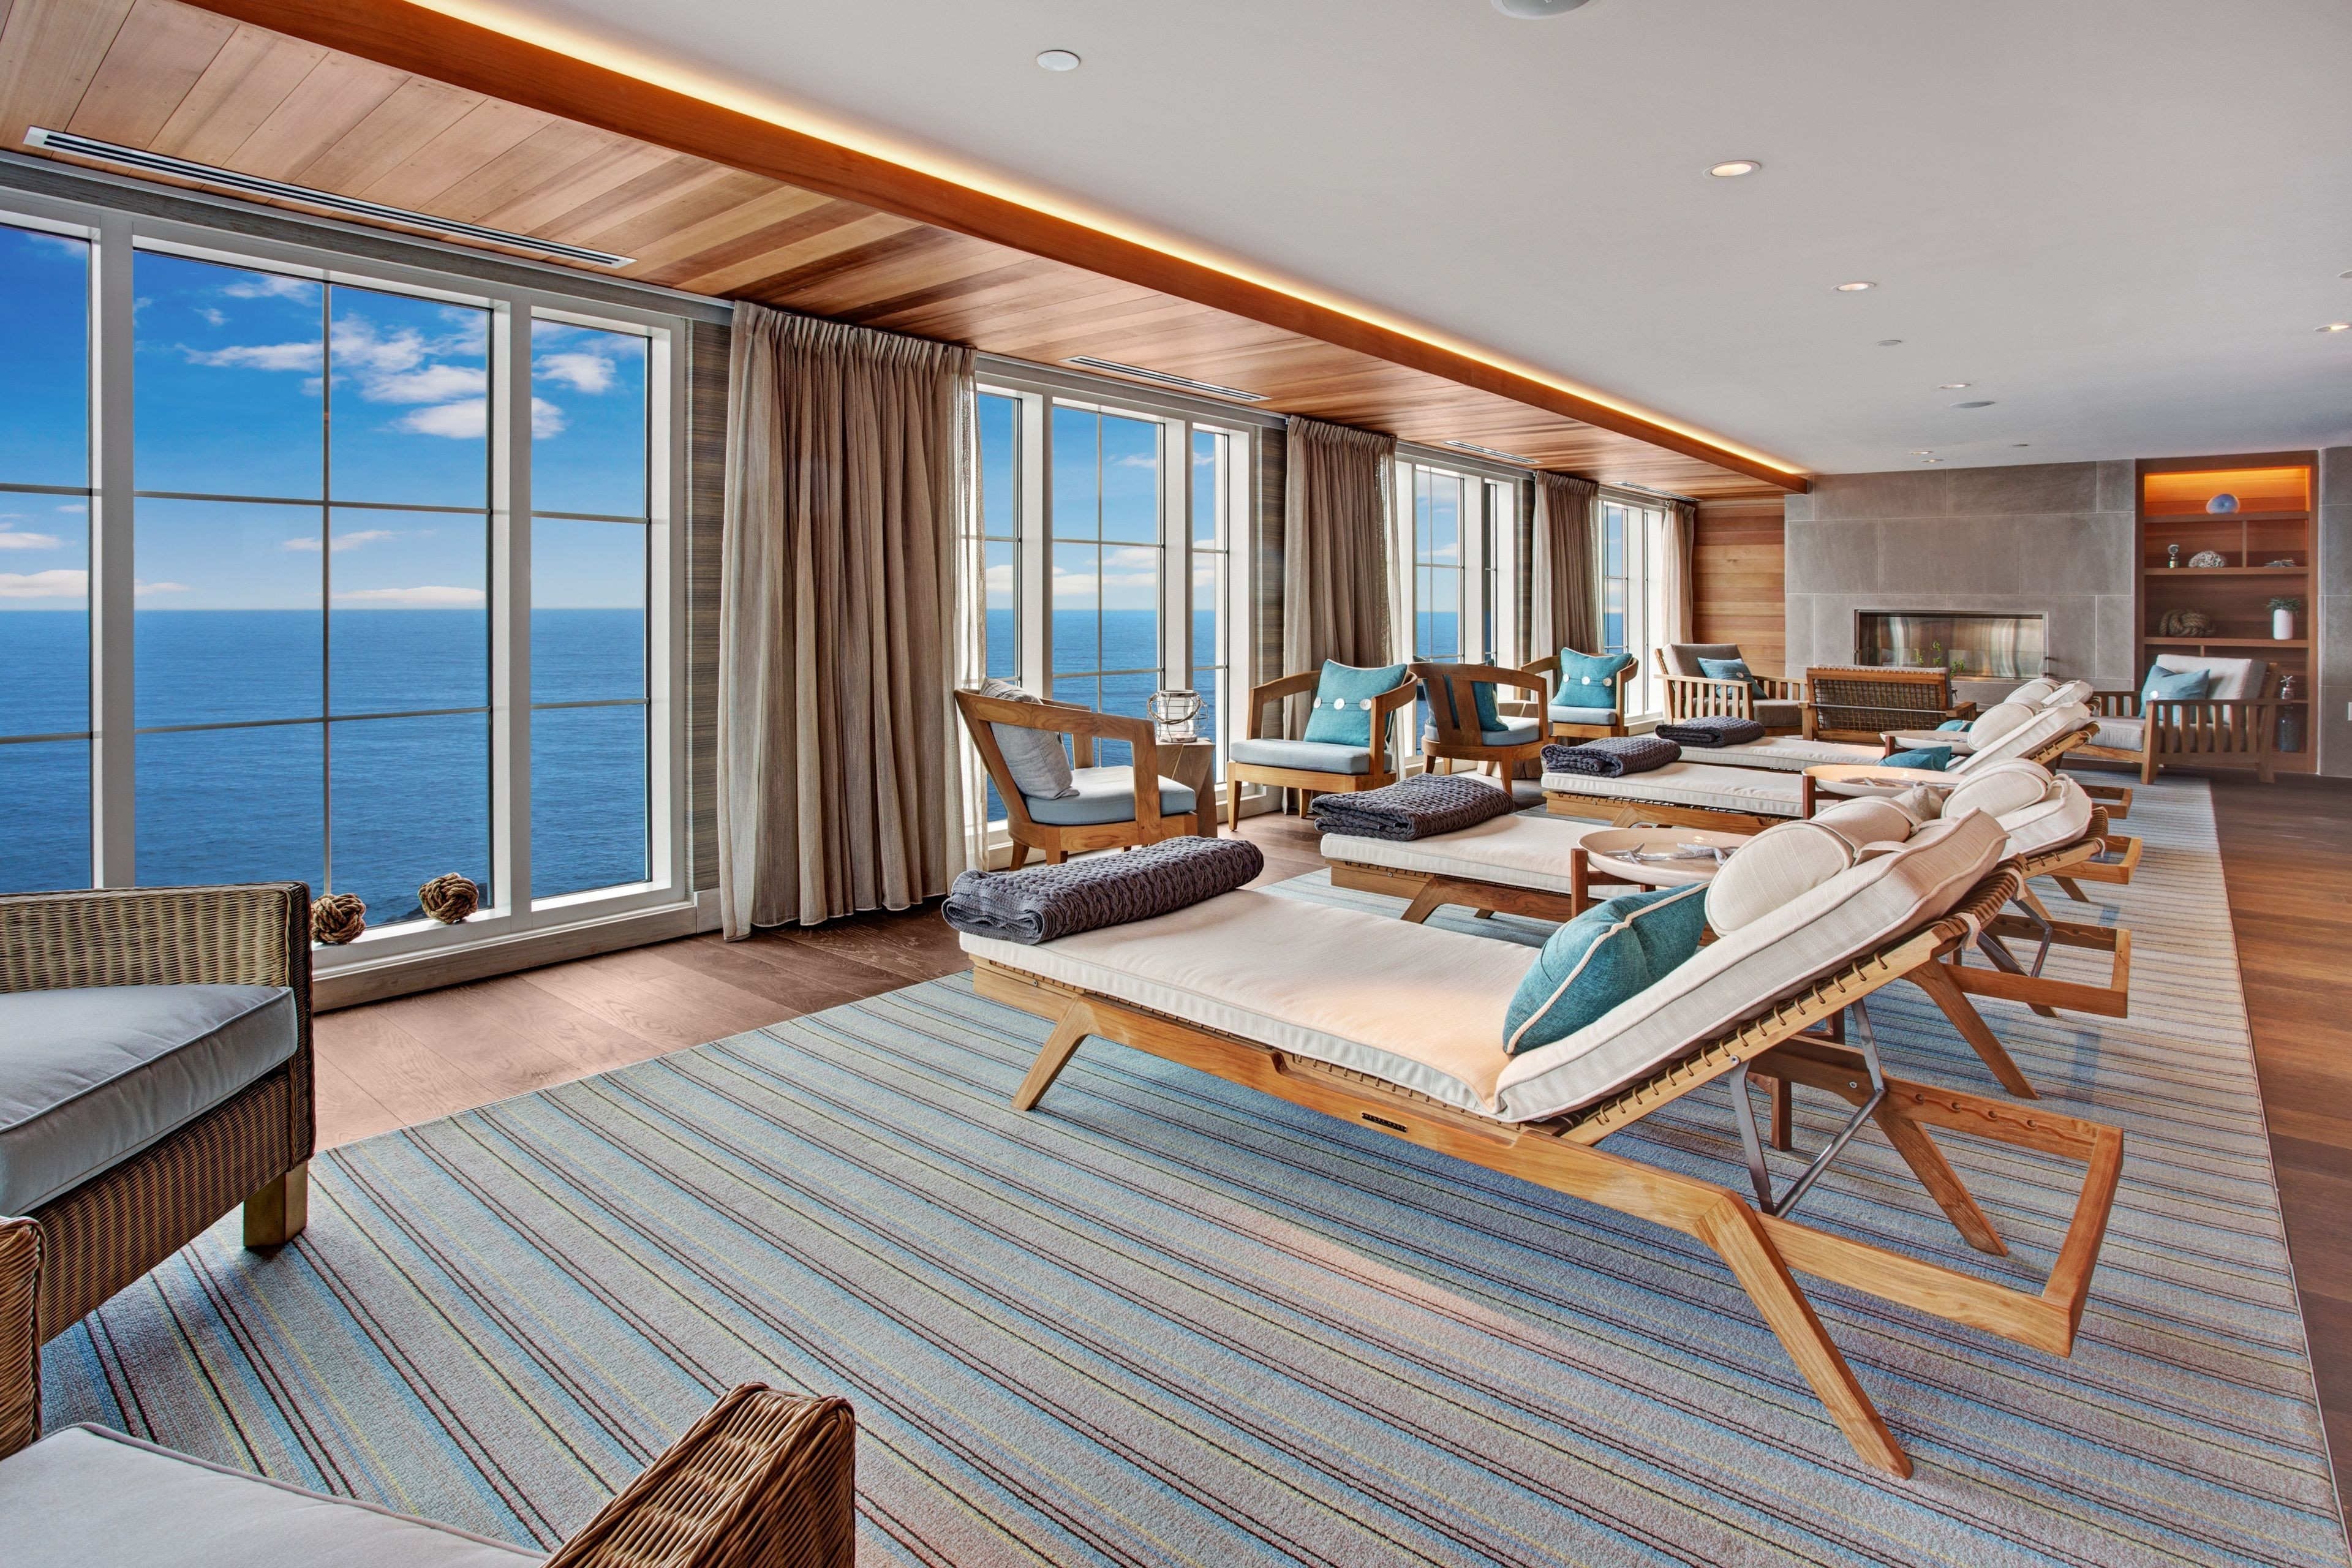 Courtesy of Cliff House Maine / Expedia